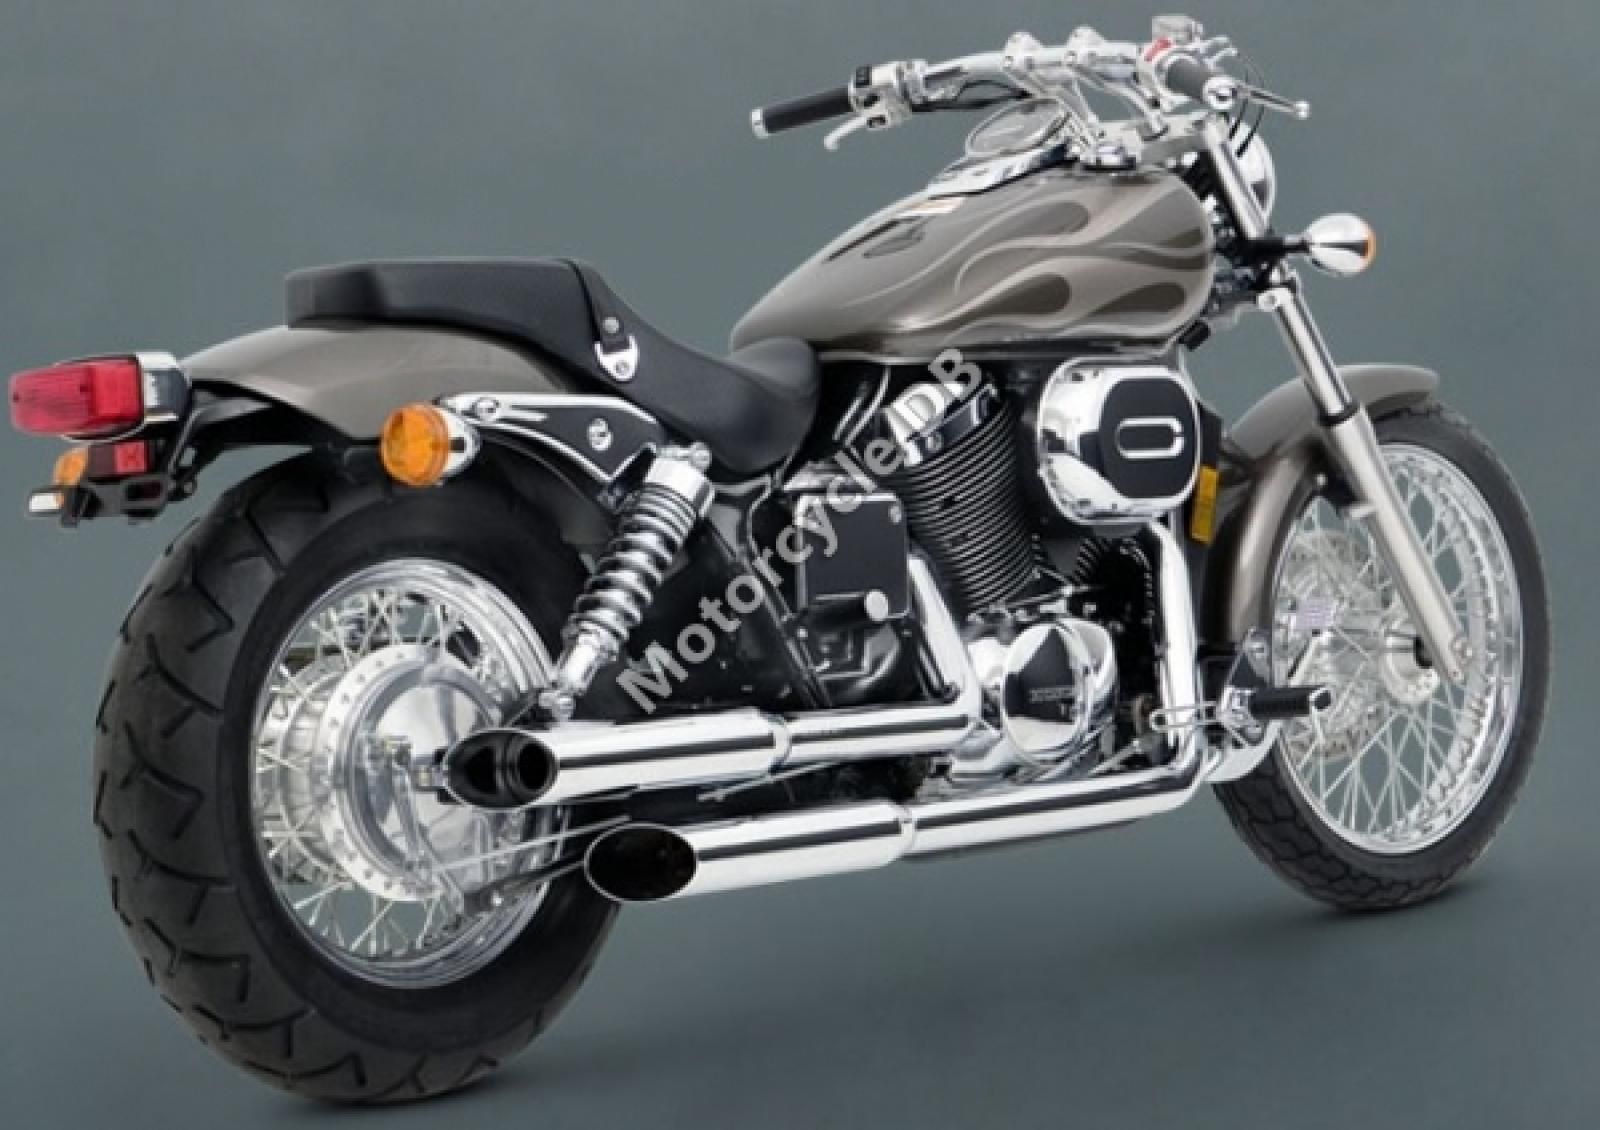 ... Honda Shadow Spirit 750 2006 #2 800 1024 1280 1600 Origin ...